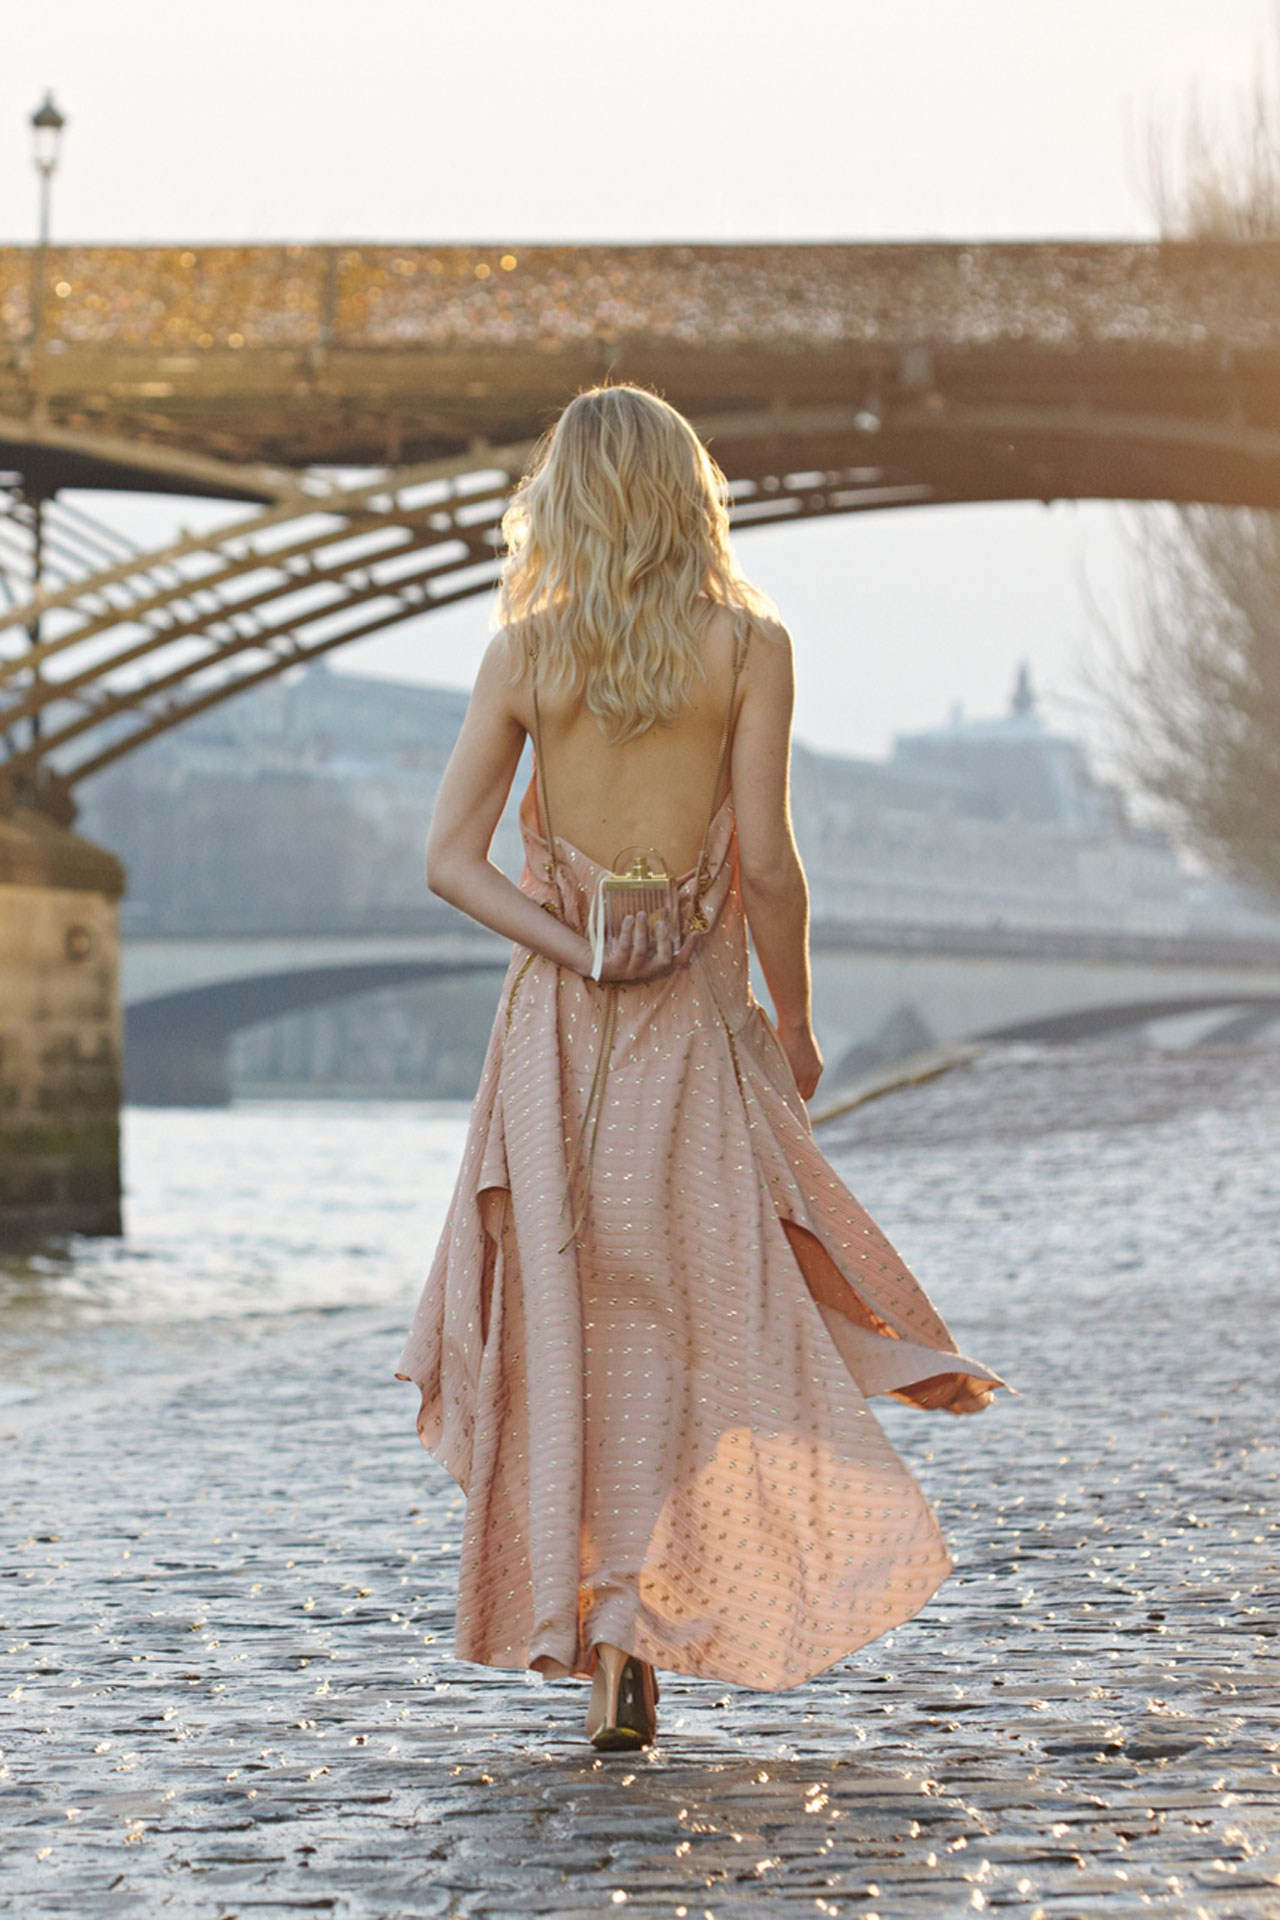 Clémence Poésy is wearing a beige pink low back sleeveless dress and bag from Chloe